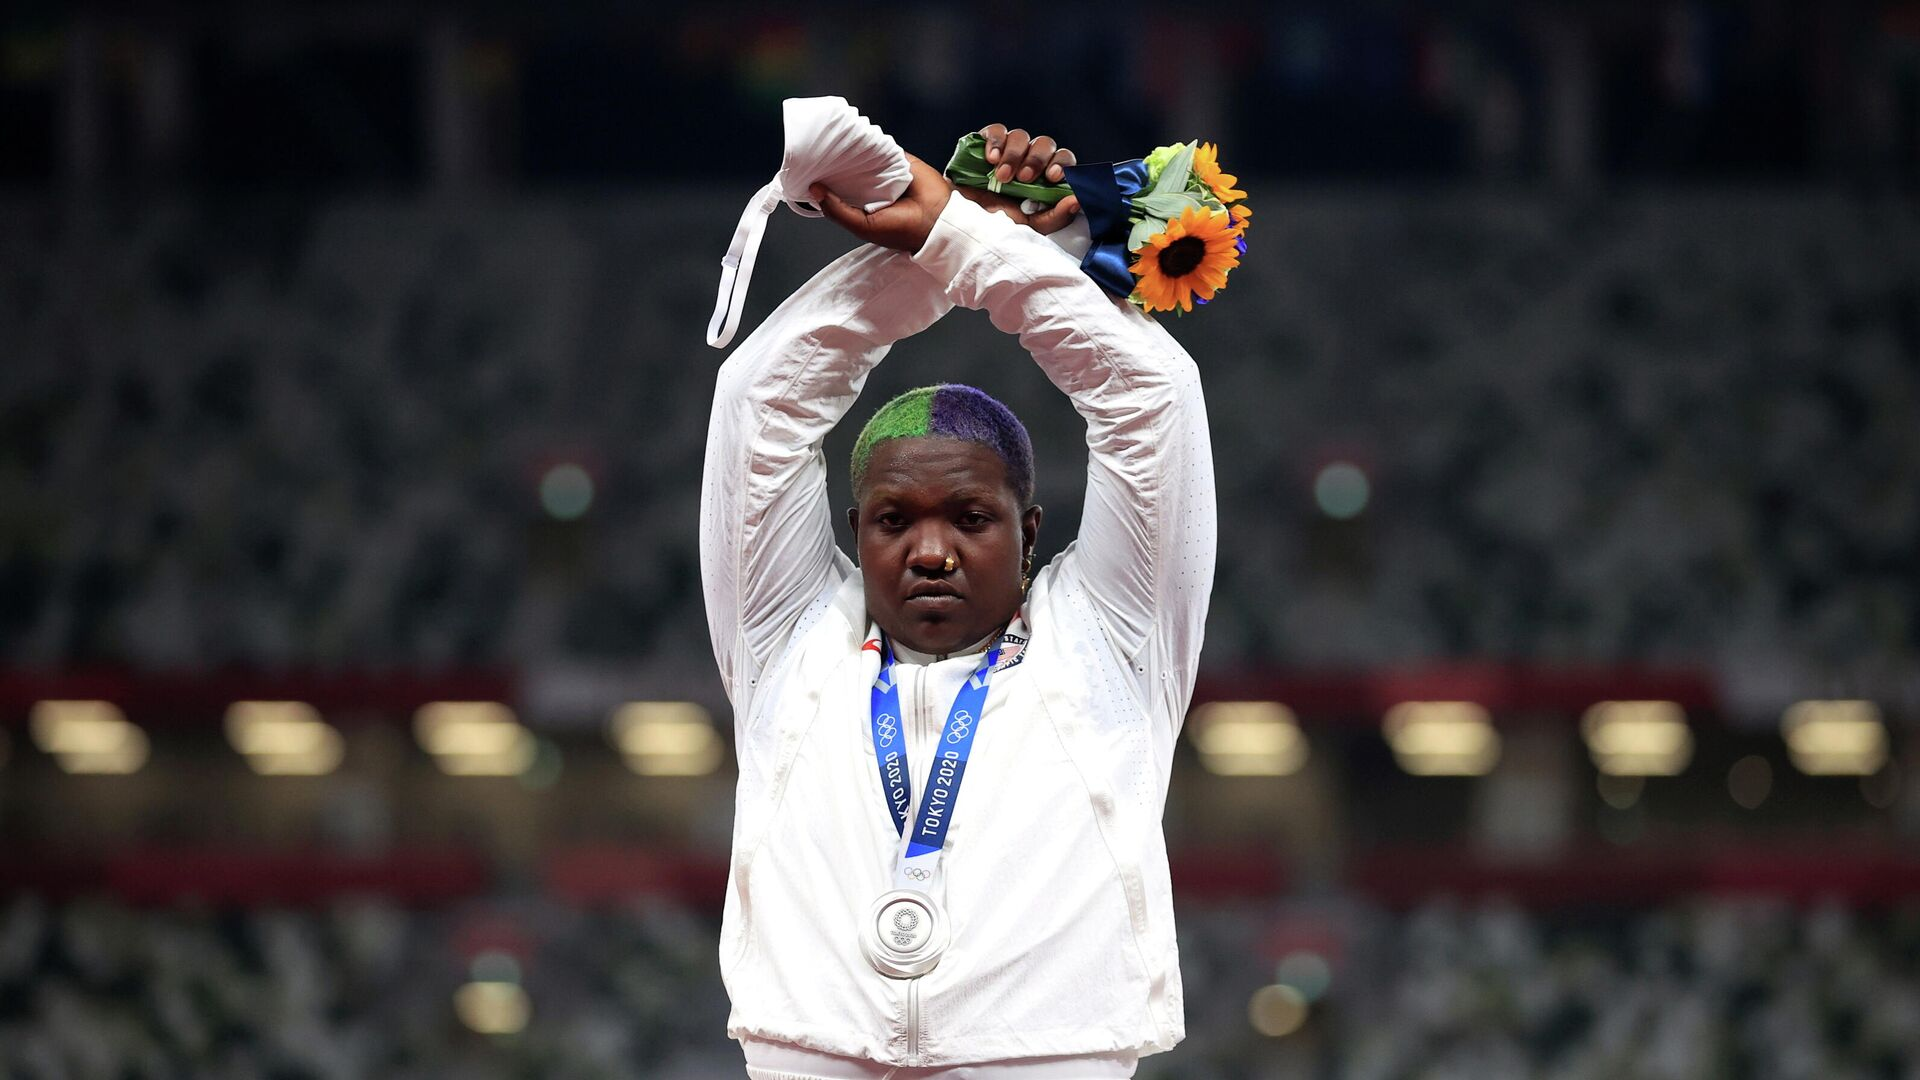 Tokyo 2020 Olympics - Athletics - Women's Shot Put - Medal Ceremony - Olympic Stadium, Tokyo, Japan – August 1, 2021. Silver medallist, Raven Saunders of the United States gestures on the podium REUTERS/Hannah Mckay     TPX IMAGES OF THE DAY - РИА Новости, 1920, 03.08.2021